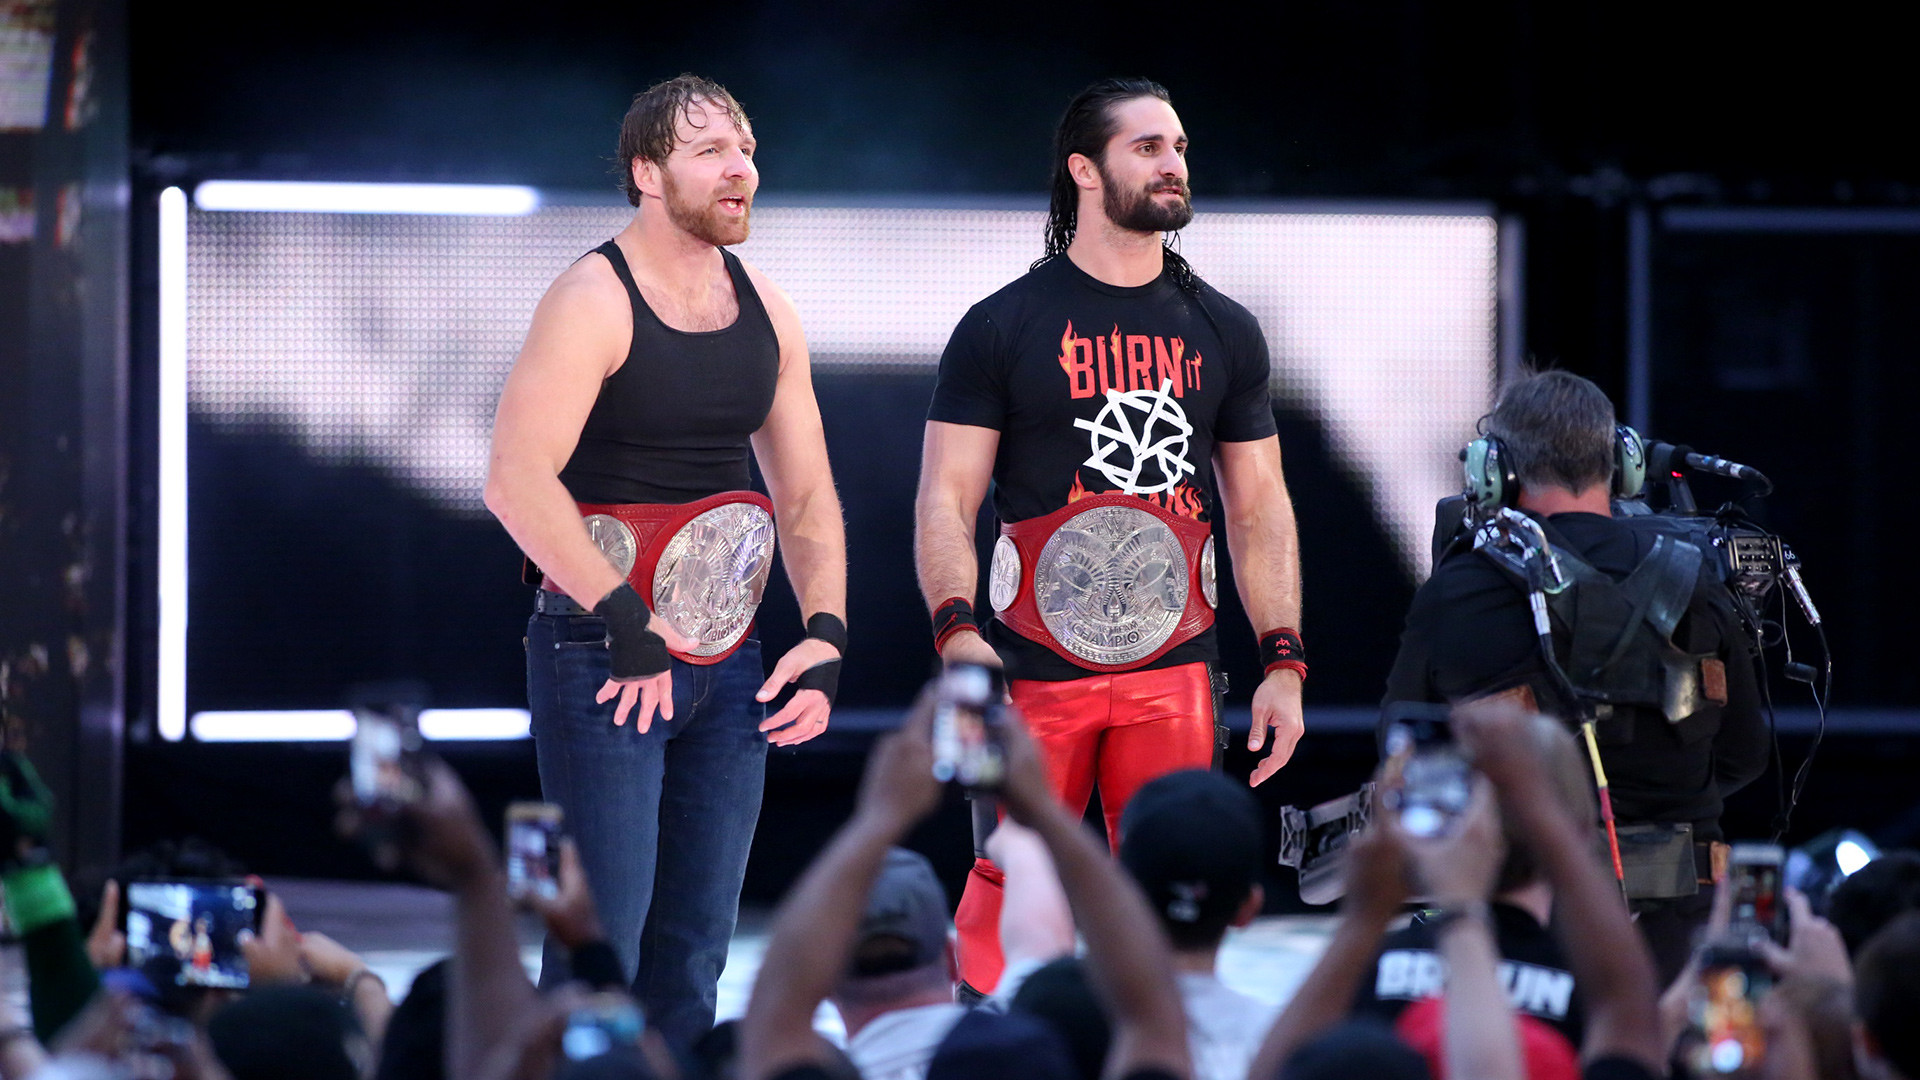 Seth Rollins & Dean Ambrose def. The Hardys The band is back together, and  the dream matches have already begun. Dean Ambrose & Seth Rollins opened  their …